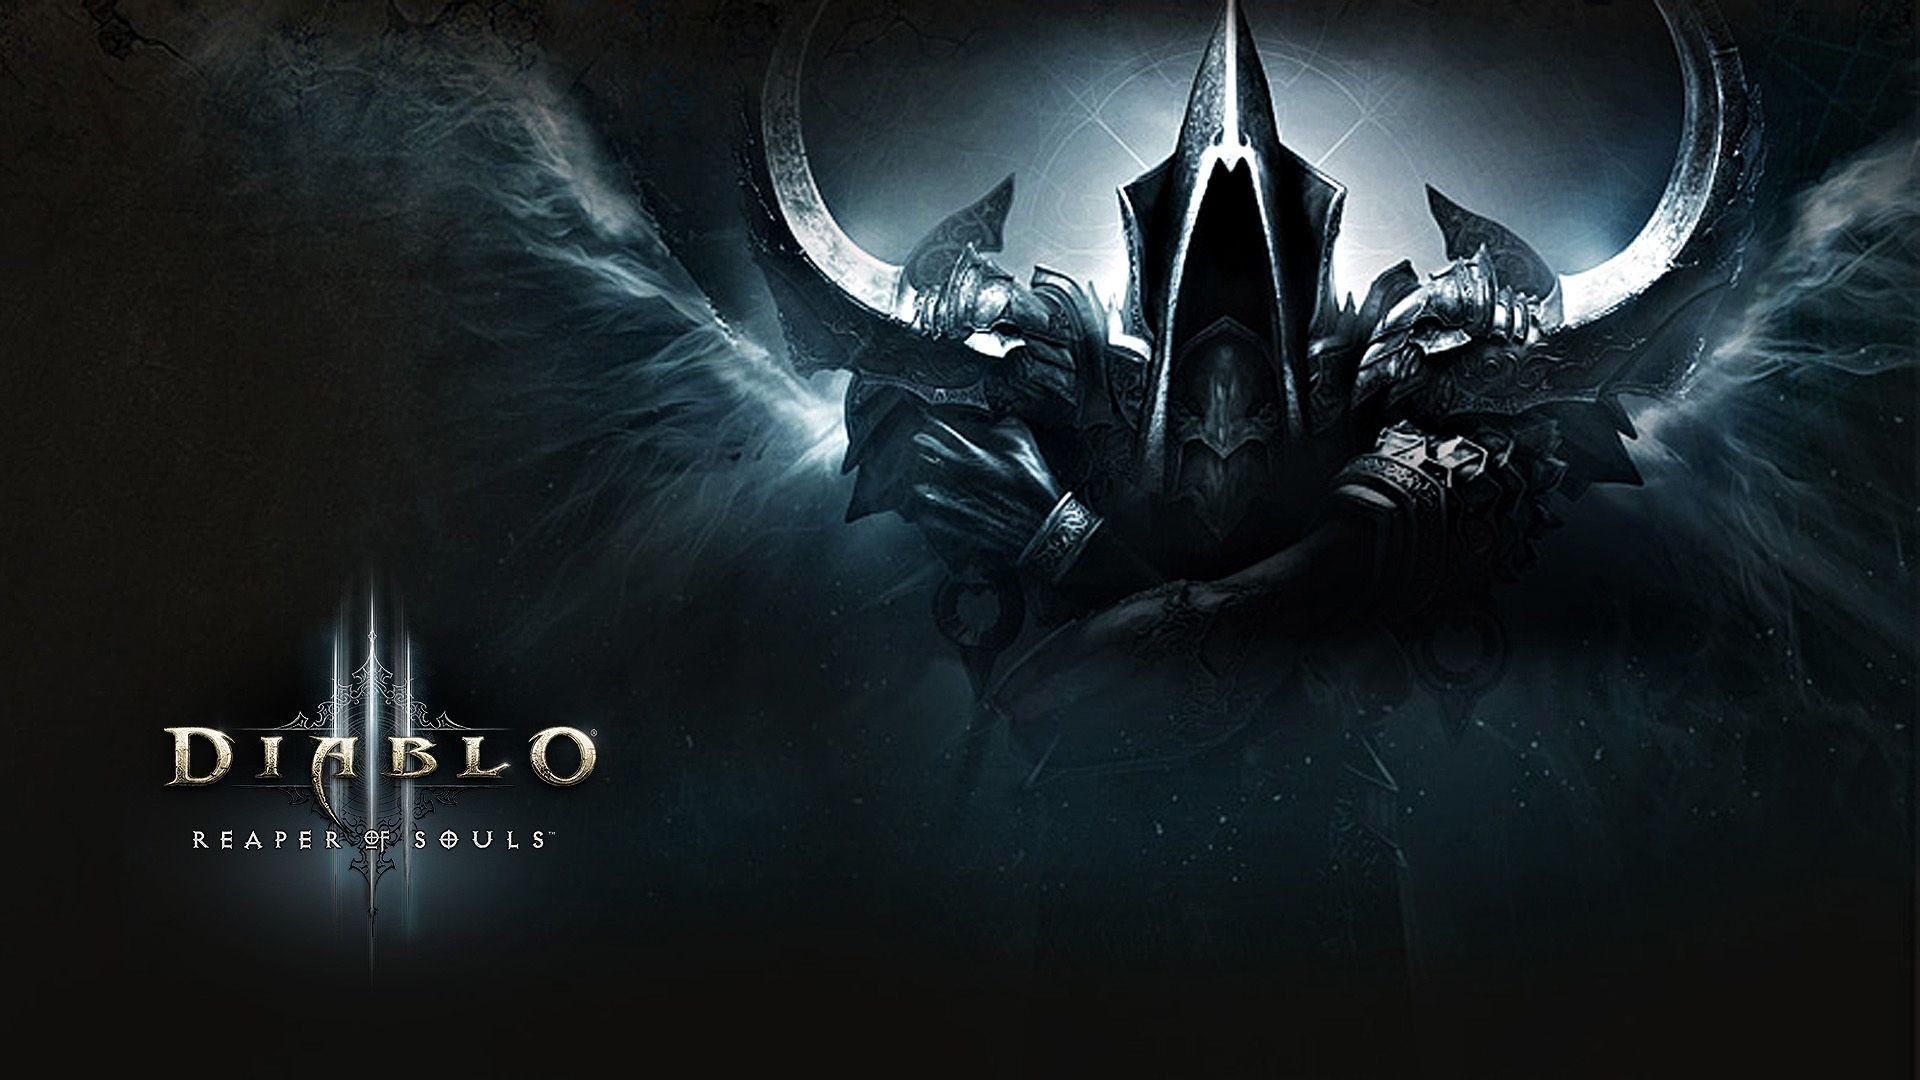 Diablo 3 Wallpaper Hd 1920x1080 Posted By Zoey Walker